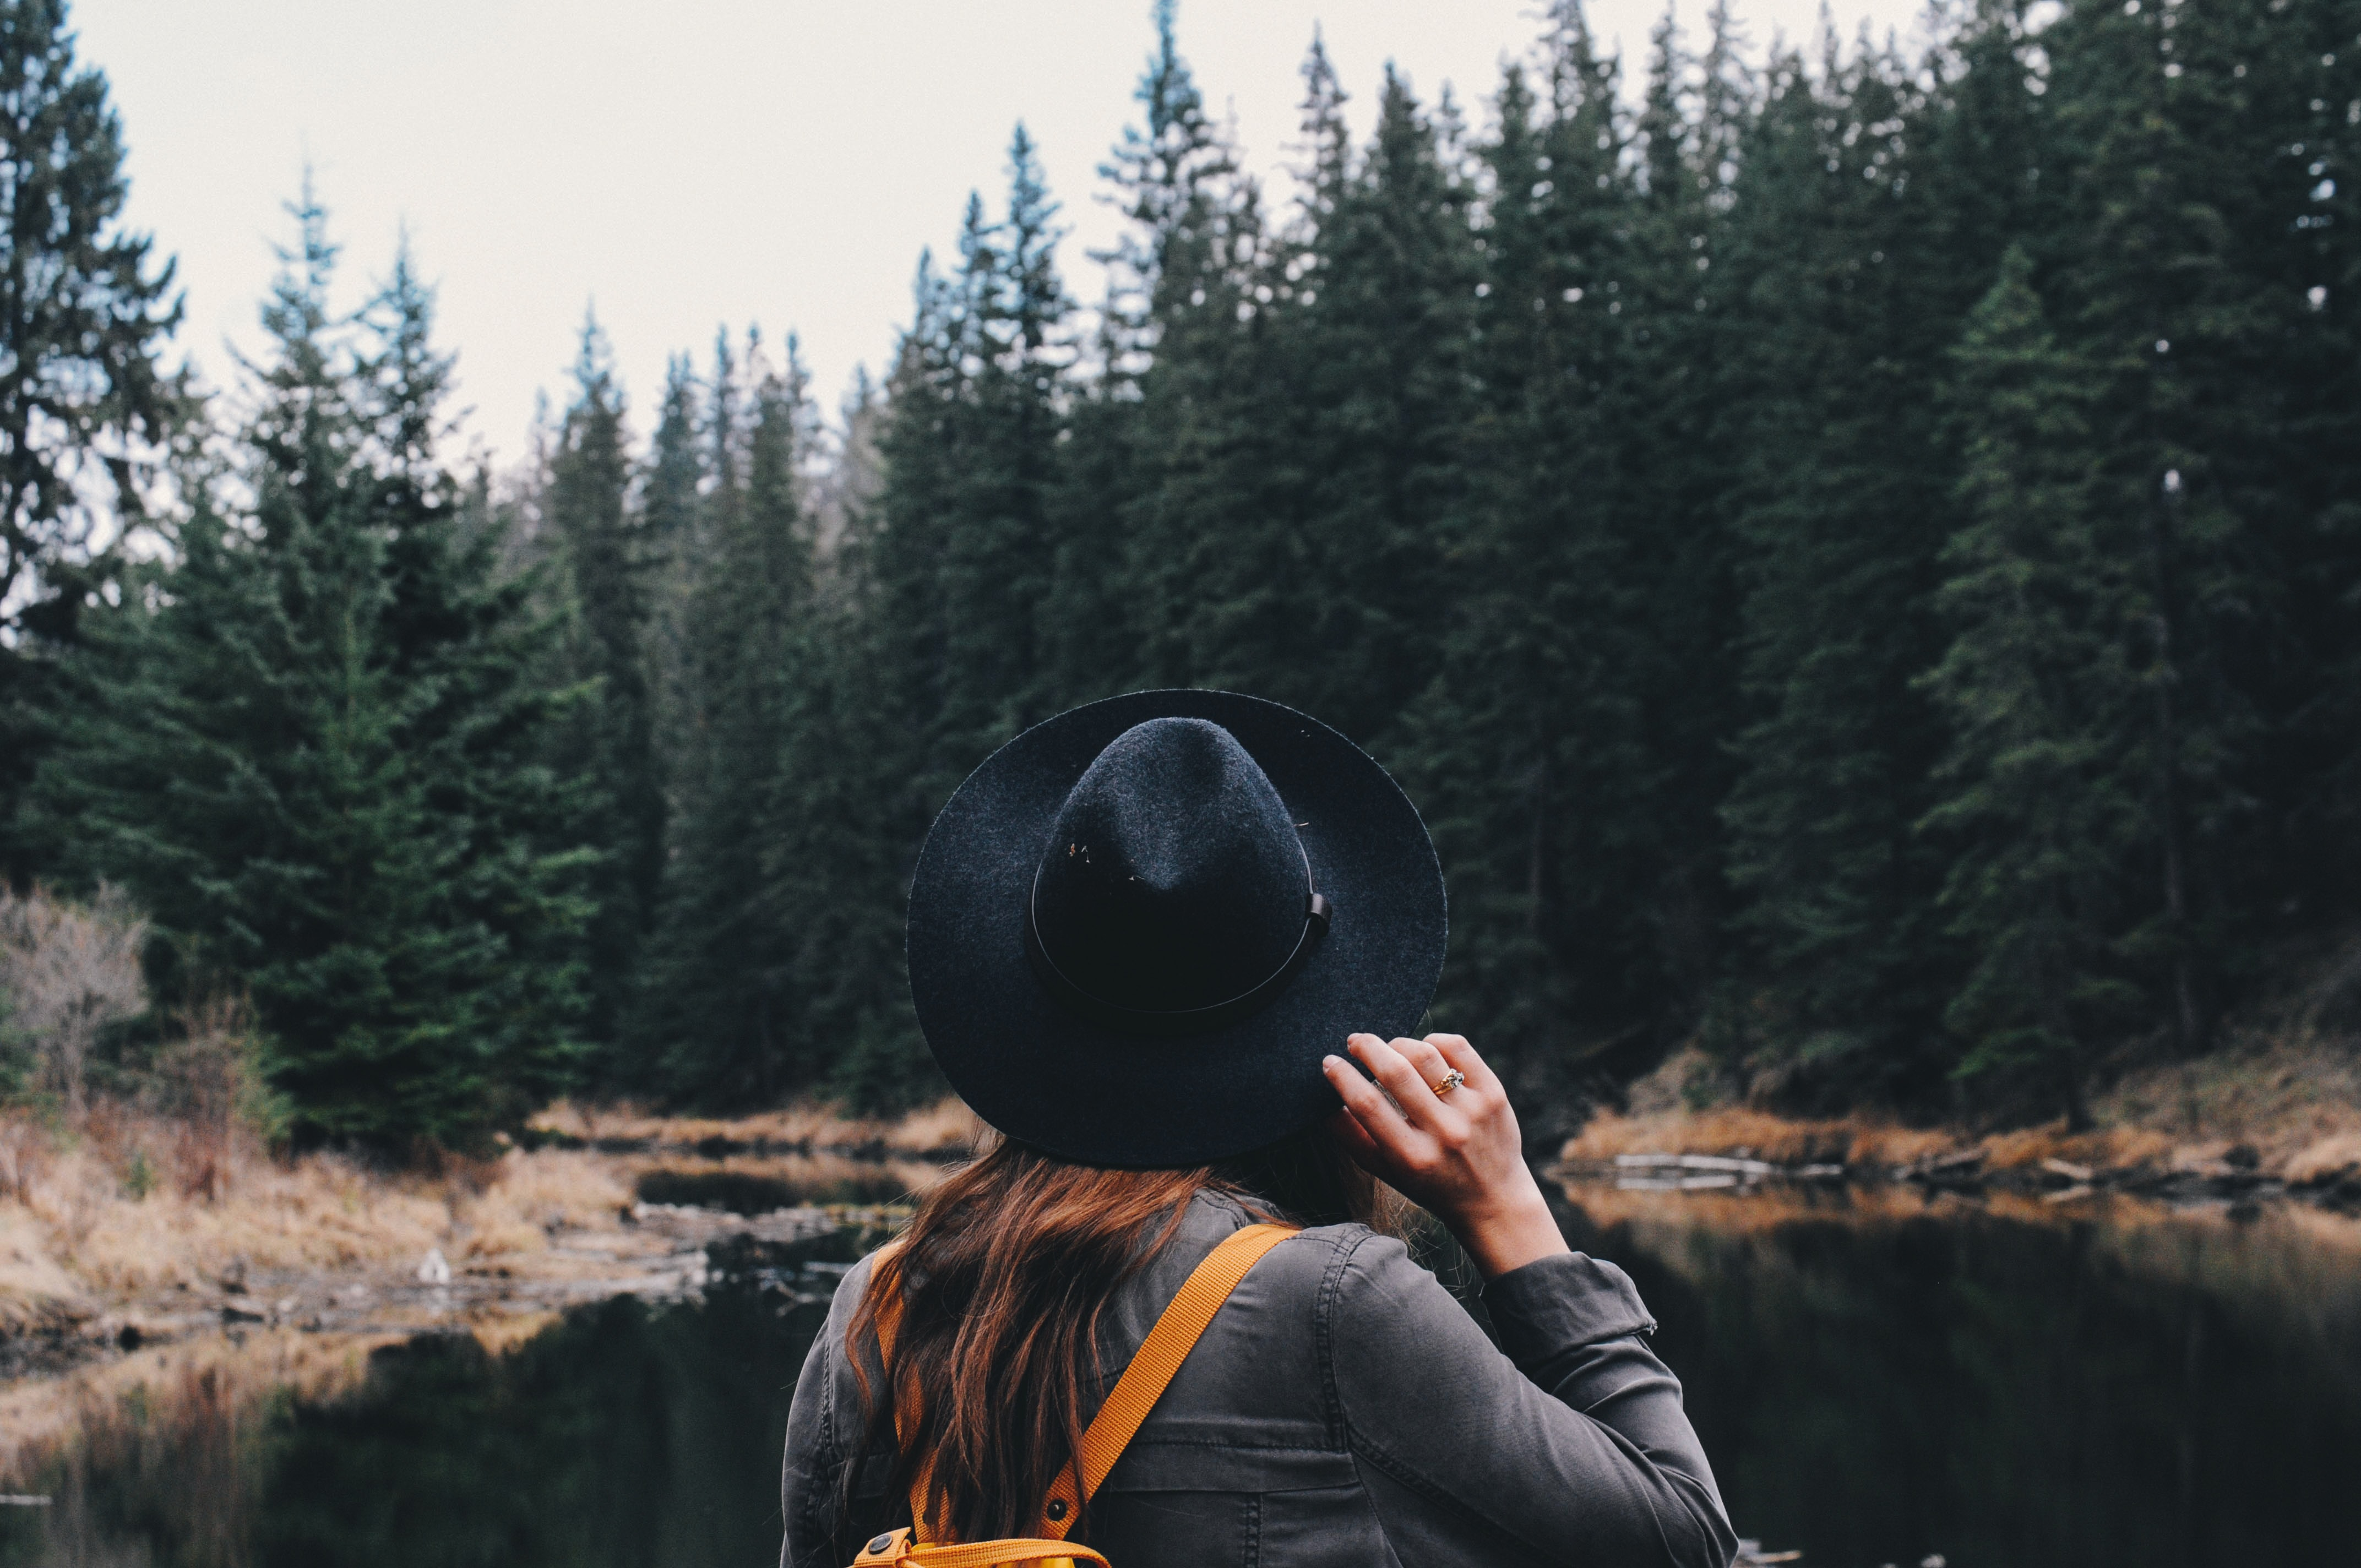 A woman in a black hat is facing the river and forest in Mactaggart Sanctuary.